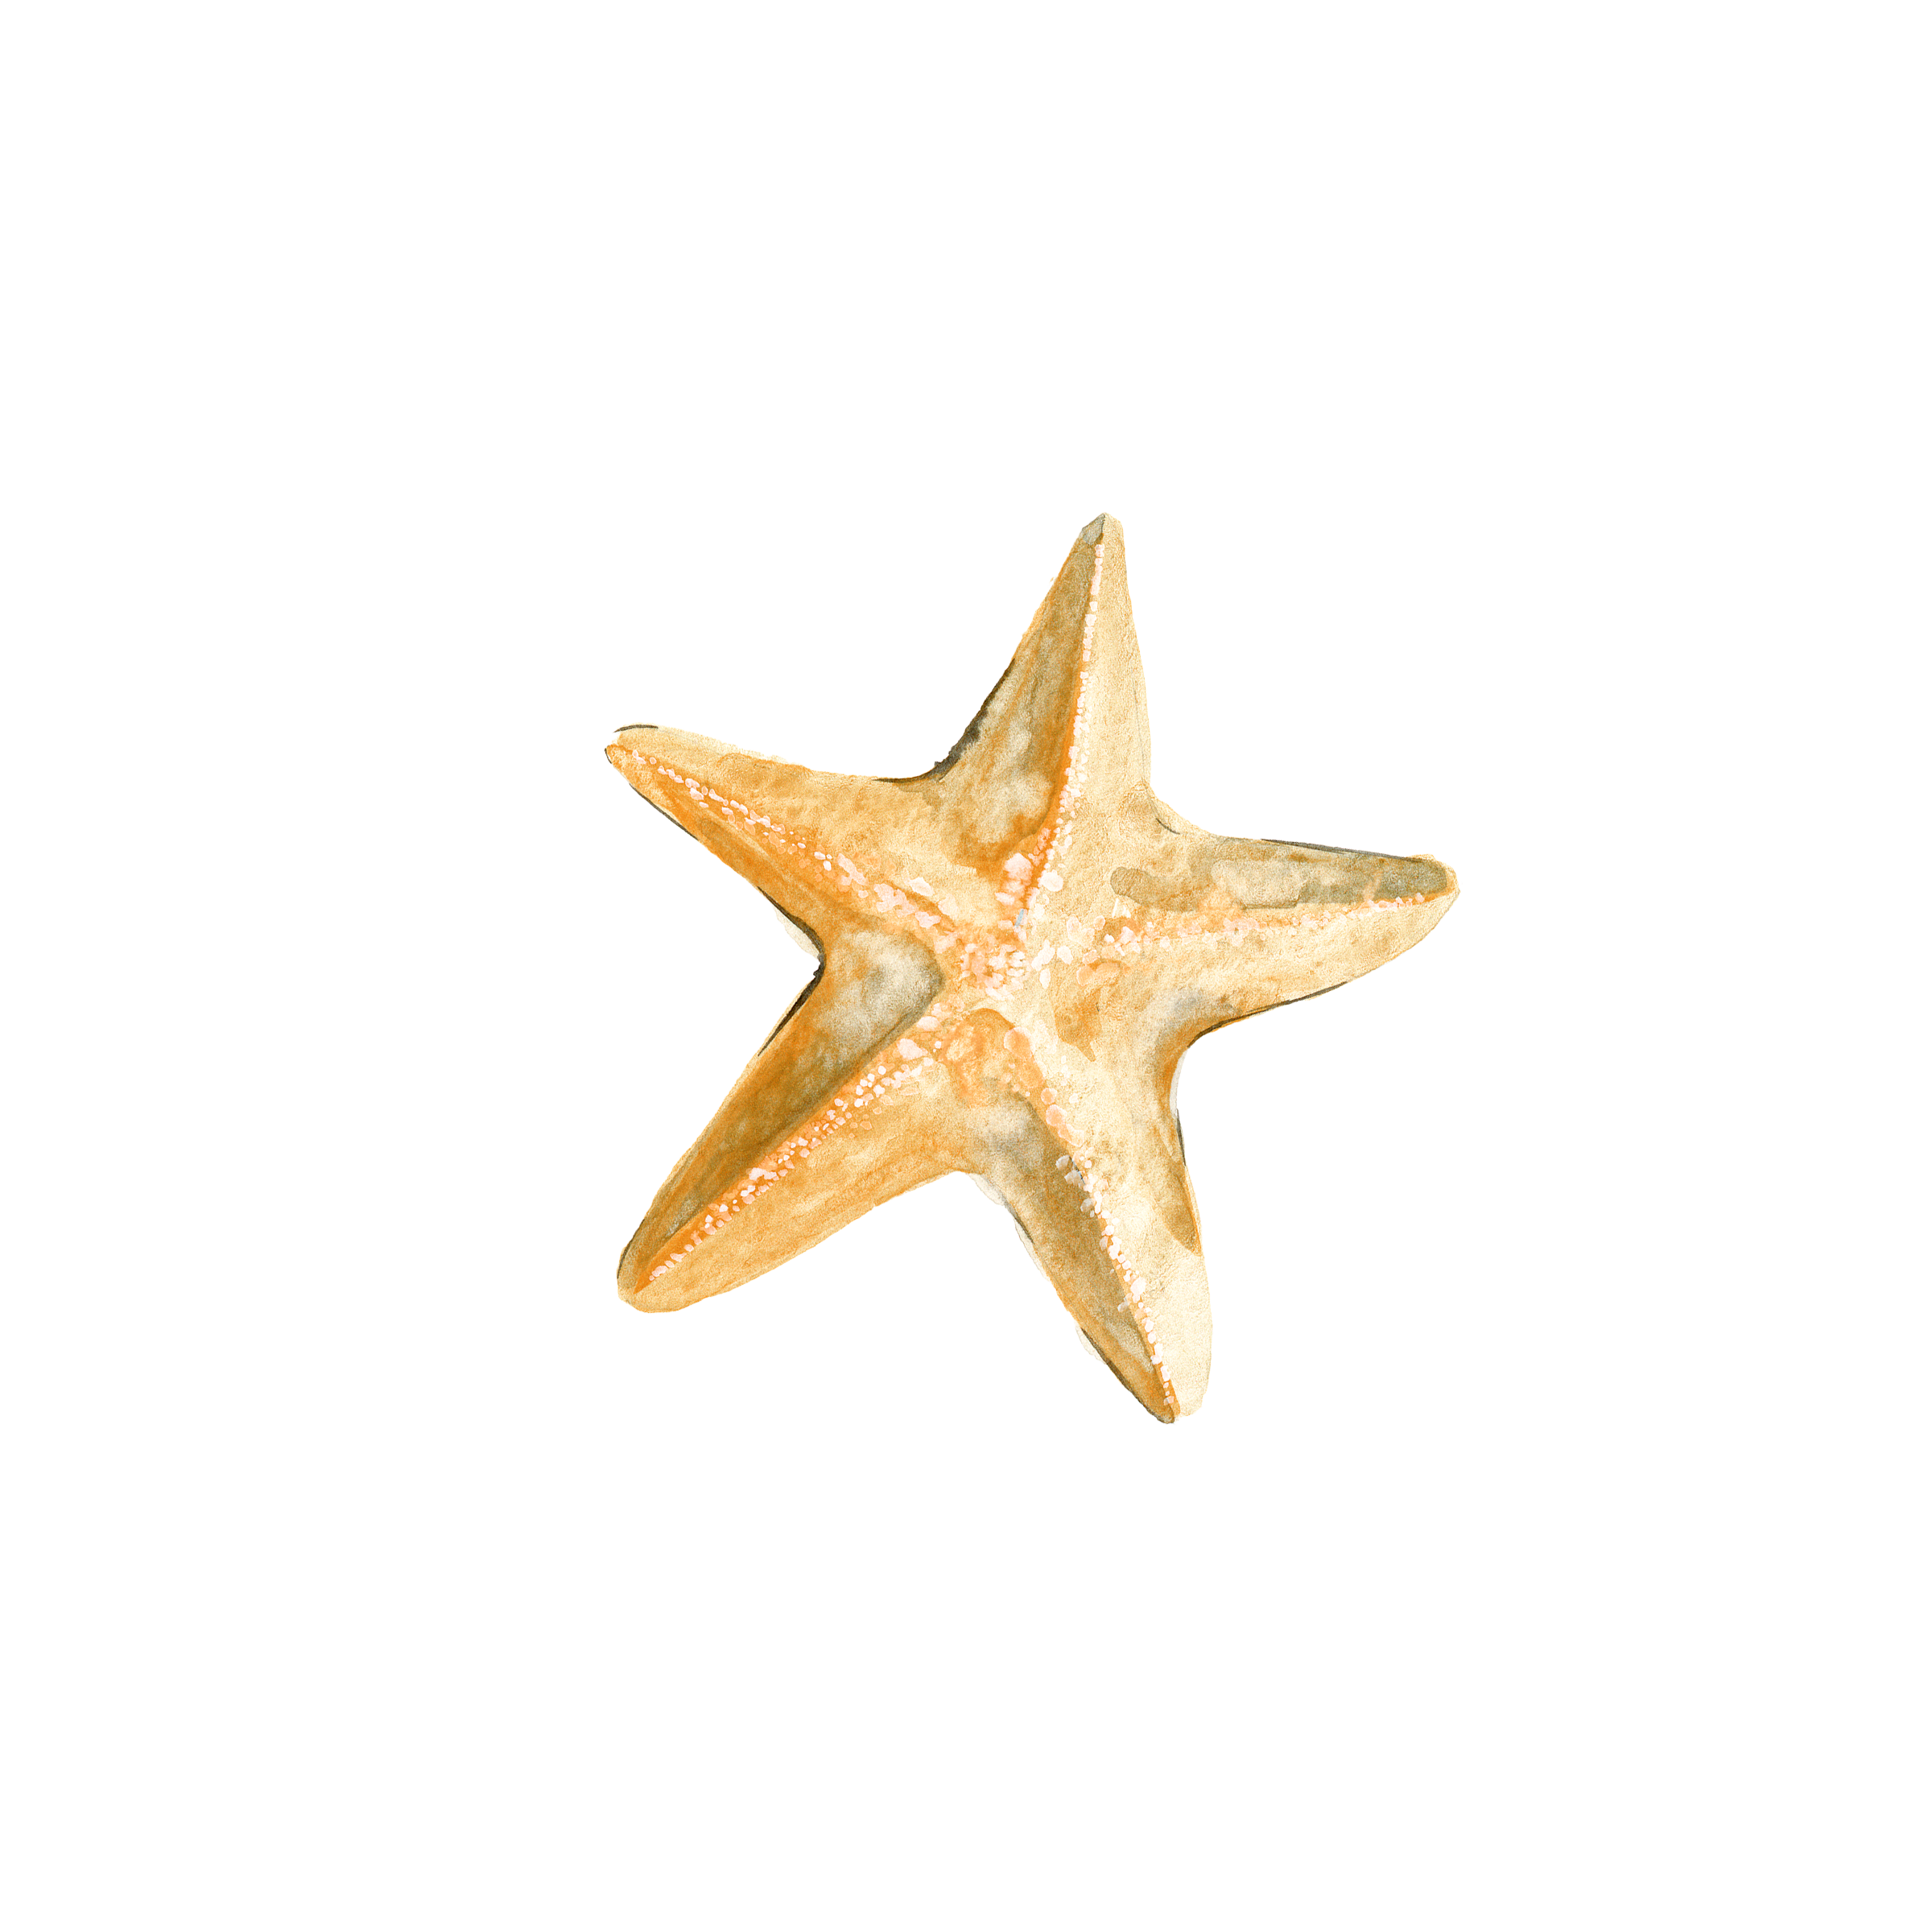 Drawing starfish. Download transprent png free